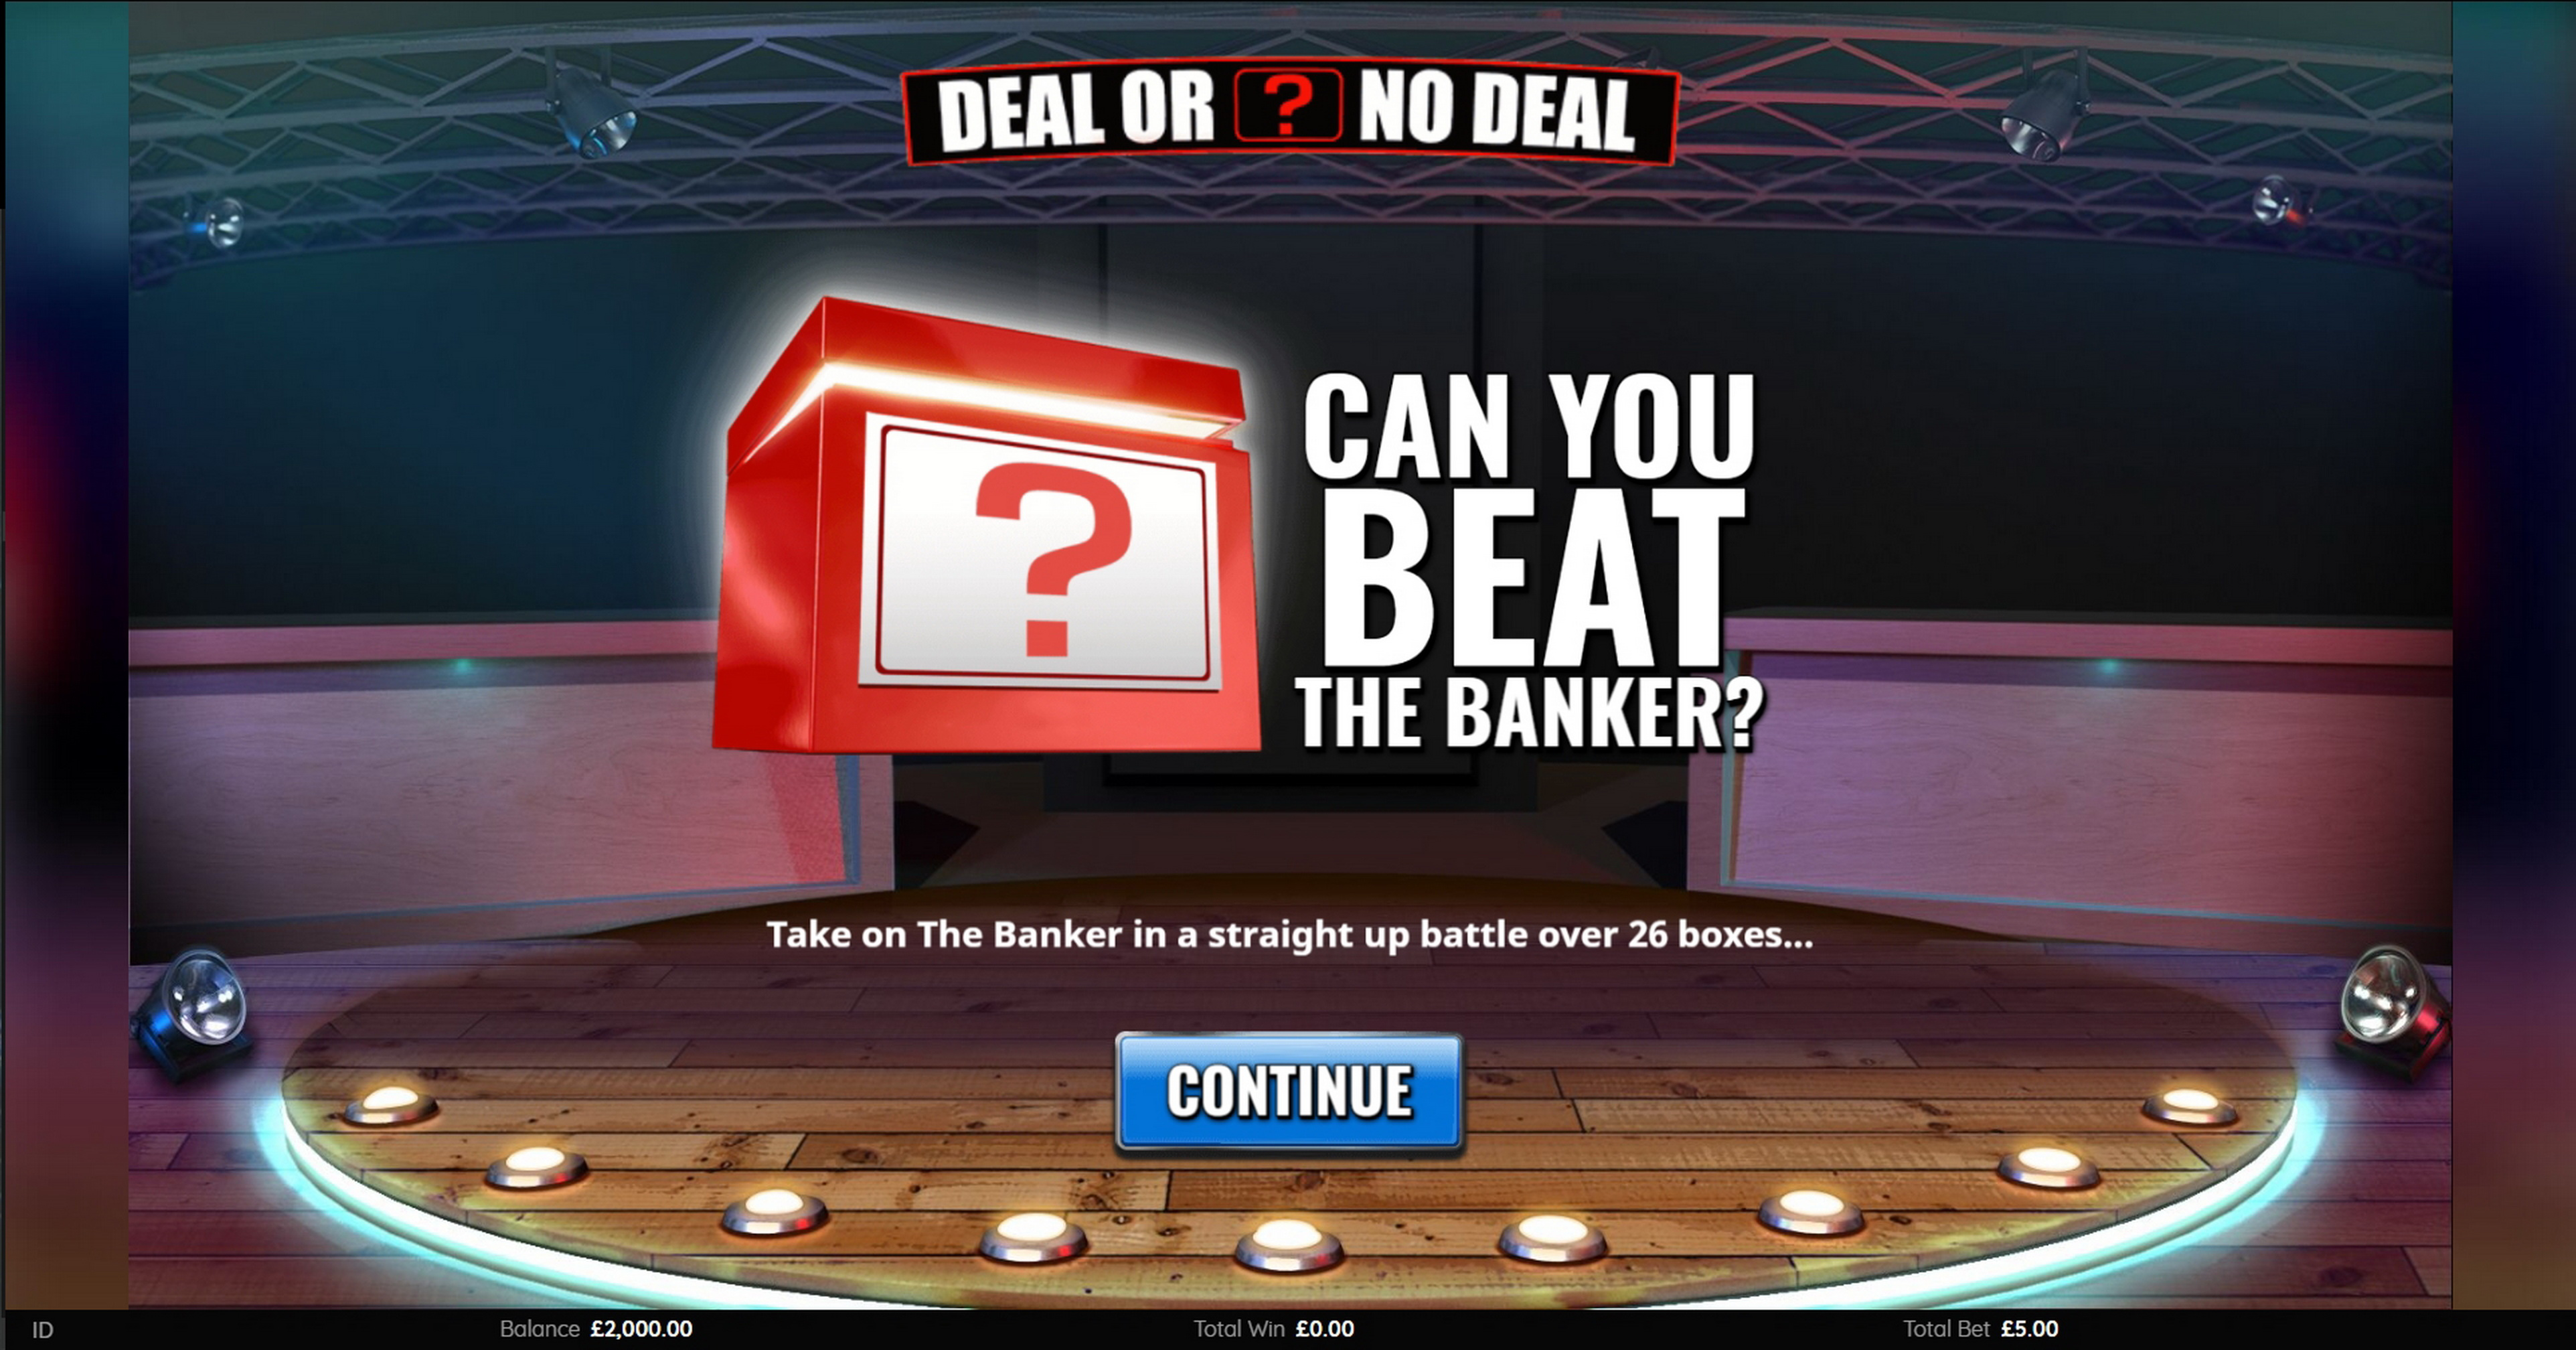 Play Deal Or No Deal (Endemol Games) Free Casino Slot Game by Endemol Games